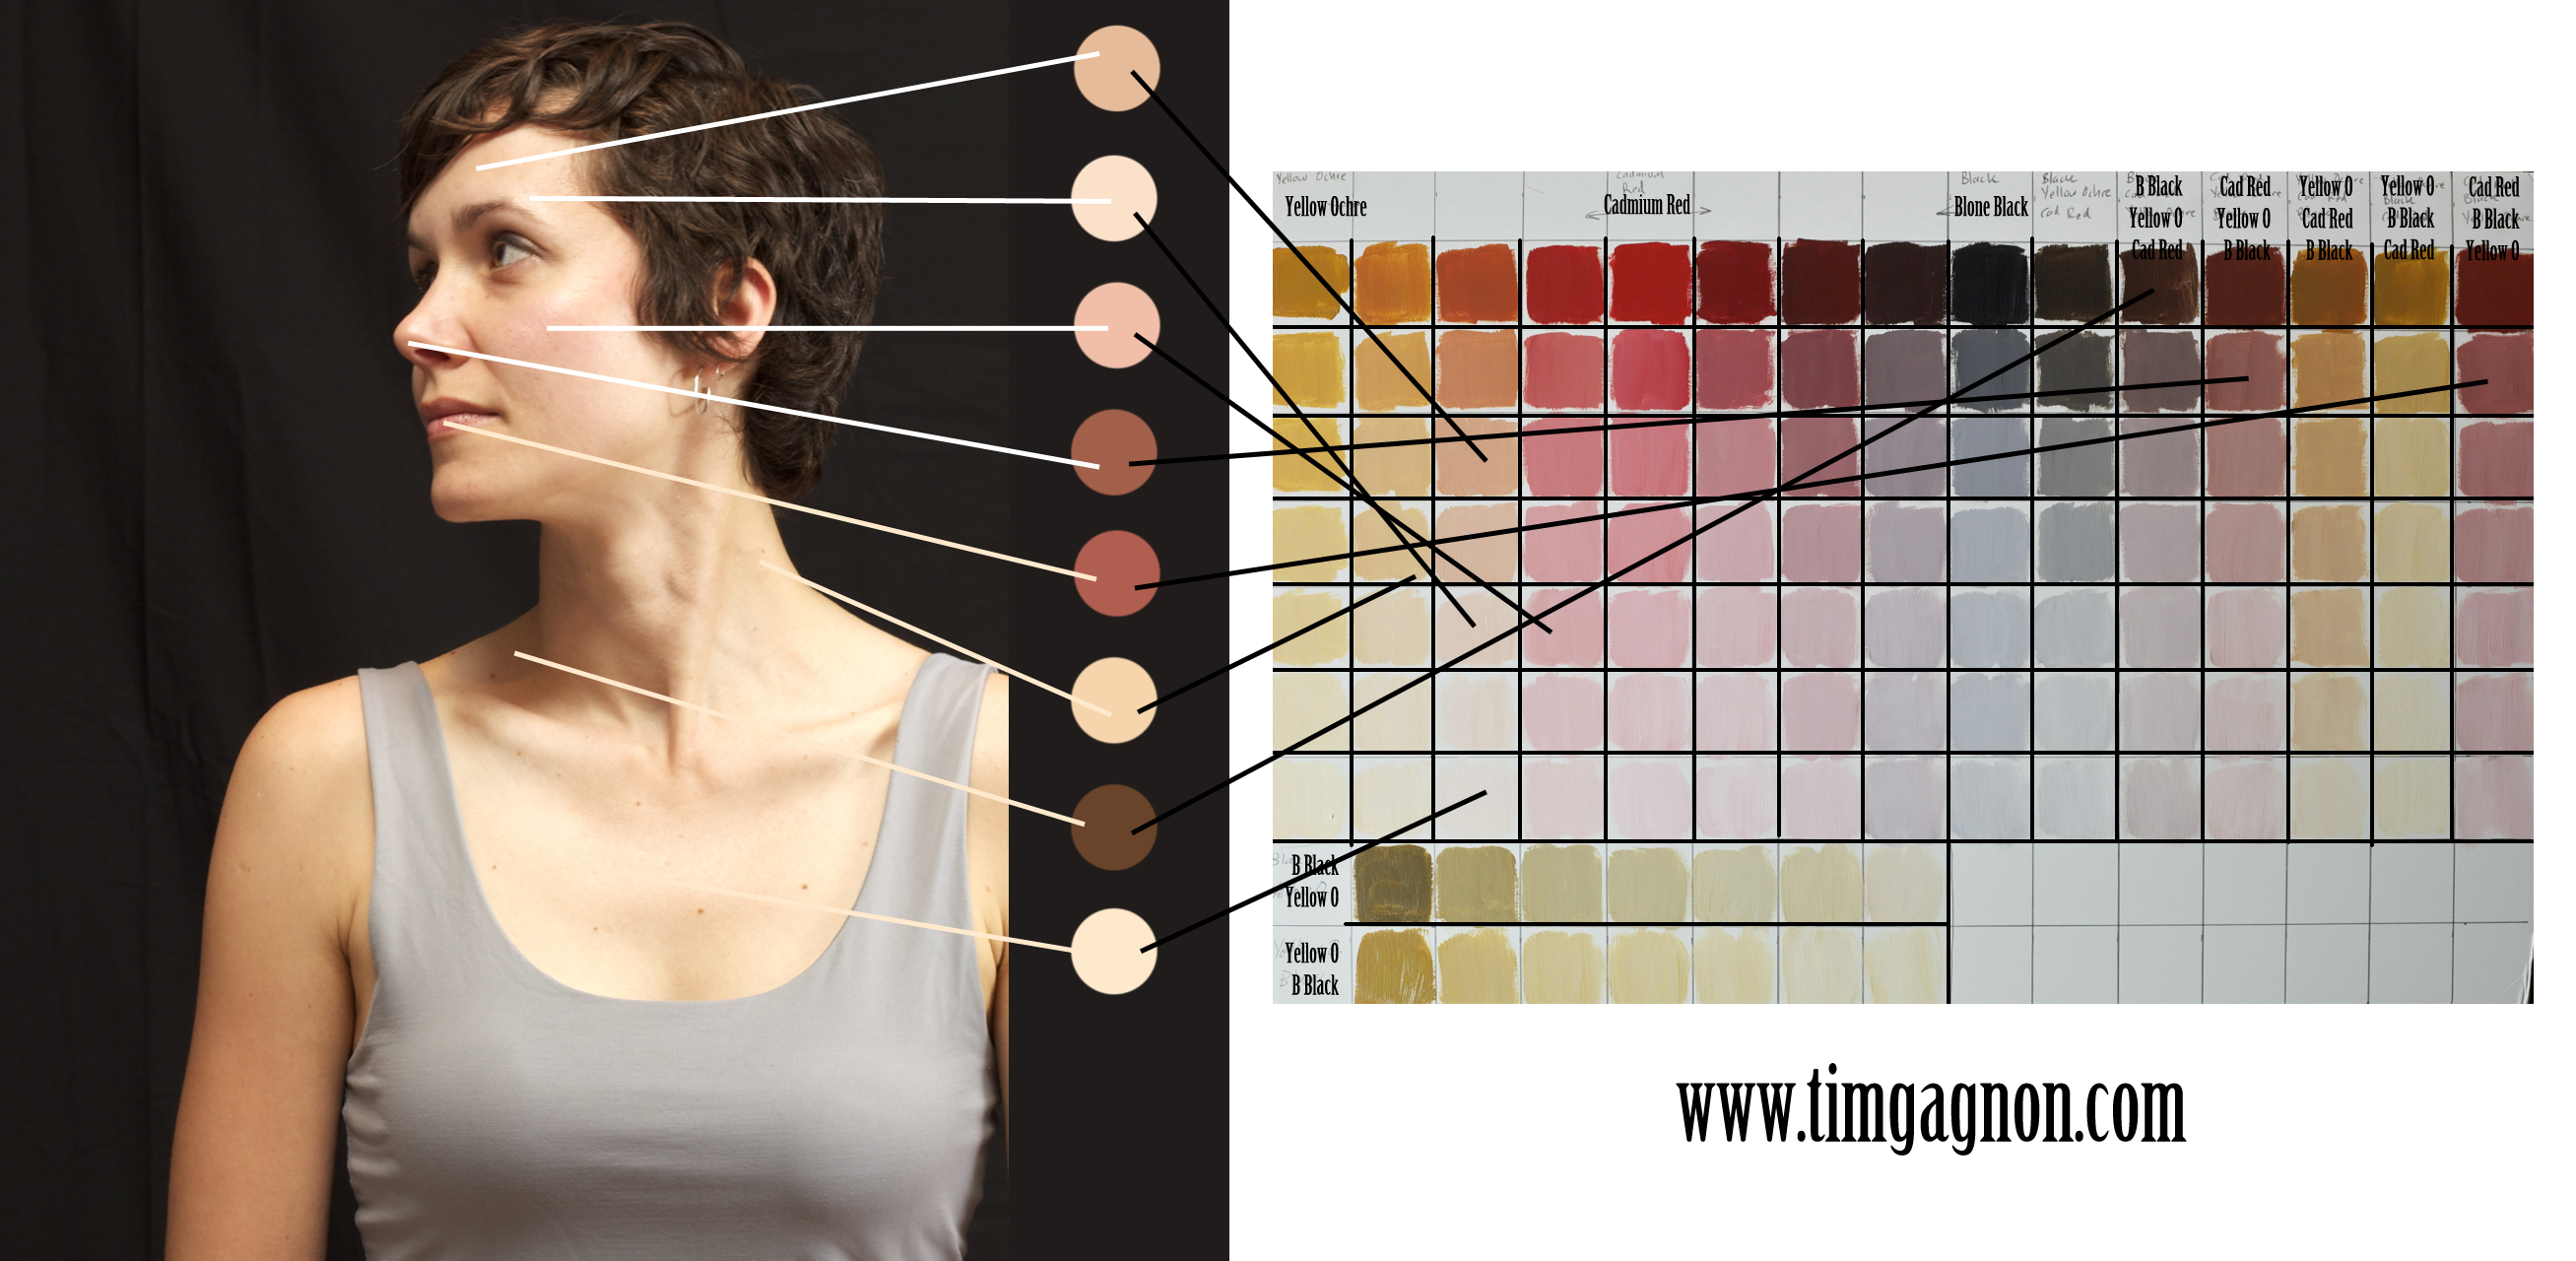 Digital Painting With A Traditional Look The Zorn Limited Palette Color Theory For Skin Tones You